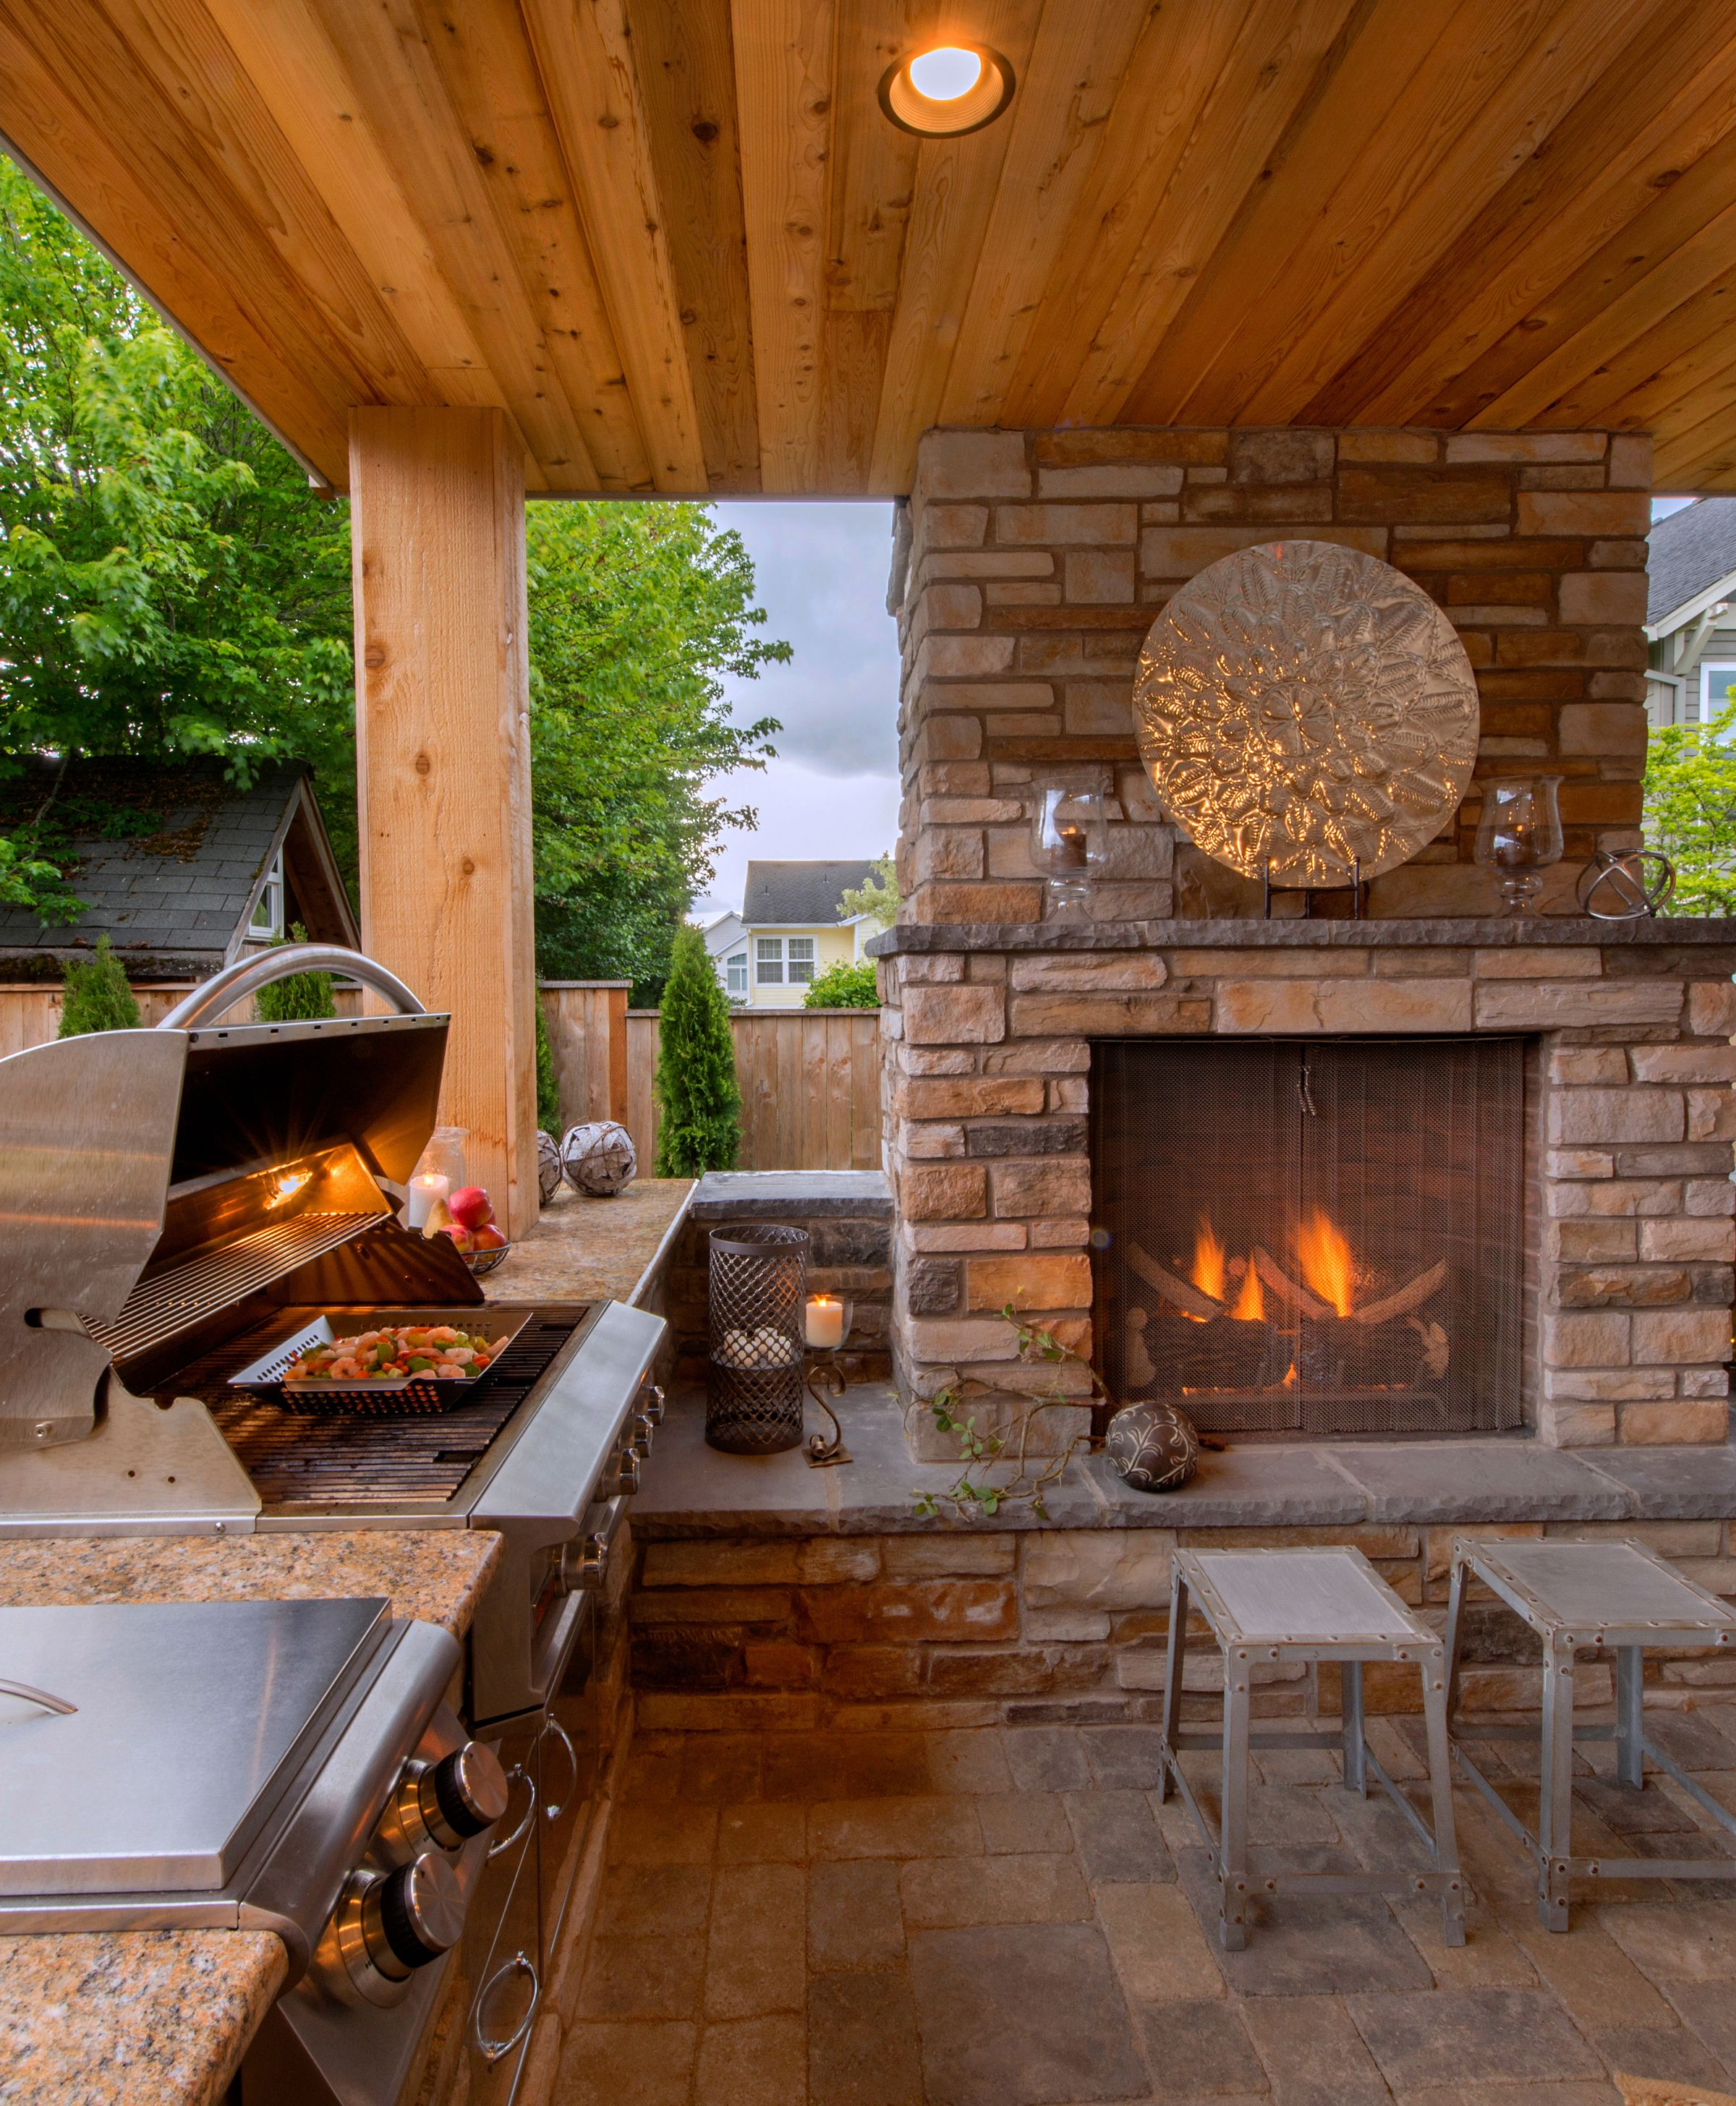 Outdoor Kitchen Cupboards: Cozy Outdoor Kitchen And Fireplace Http://www